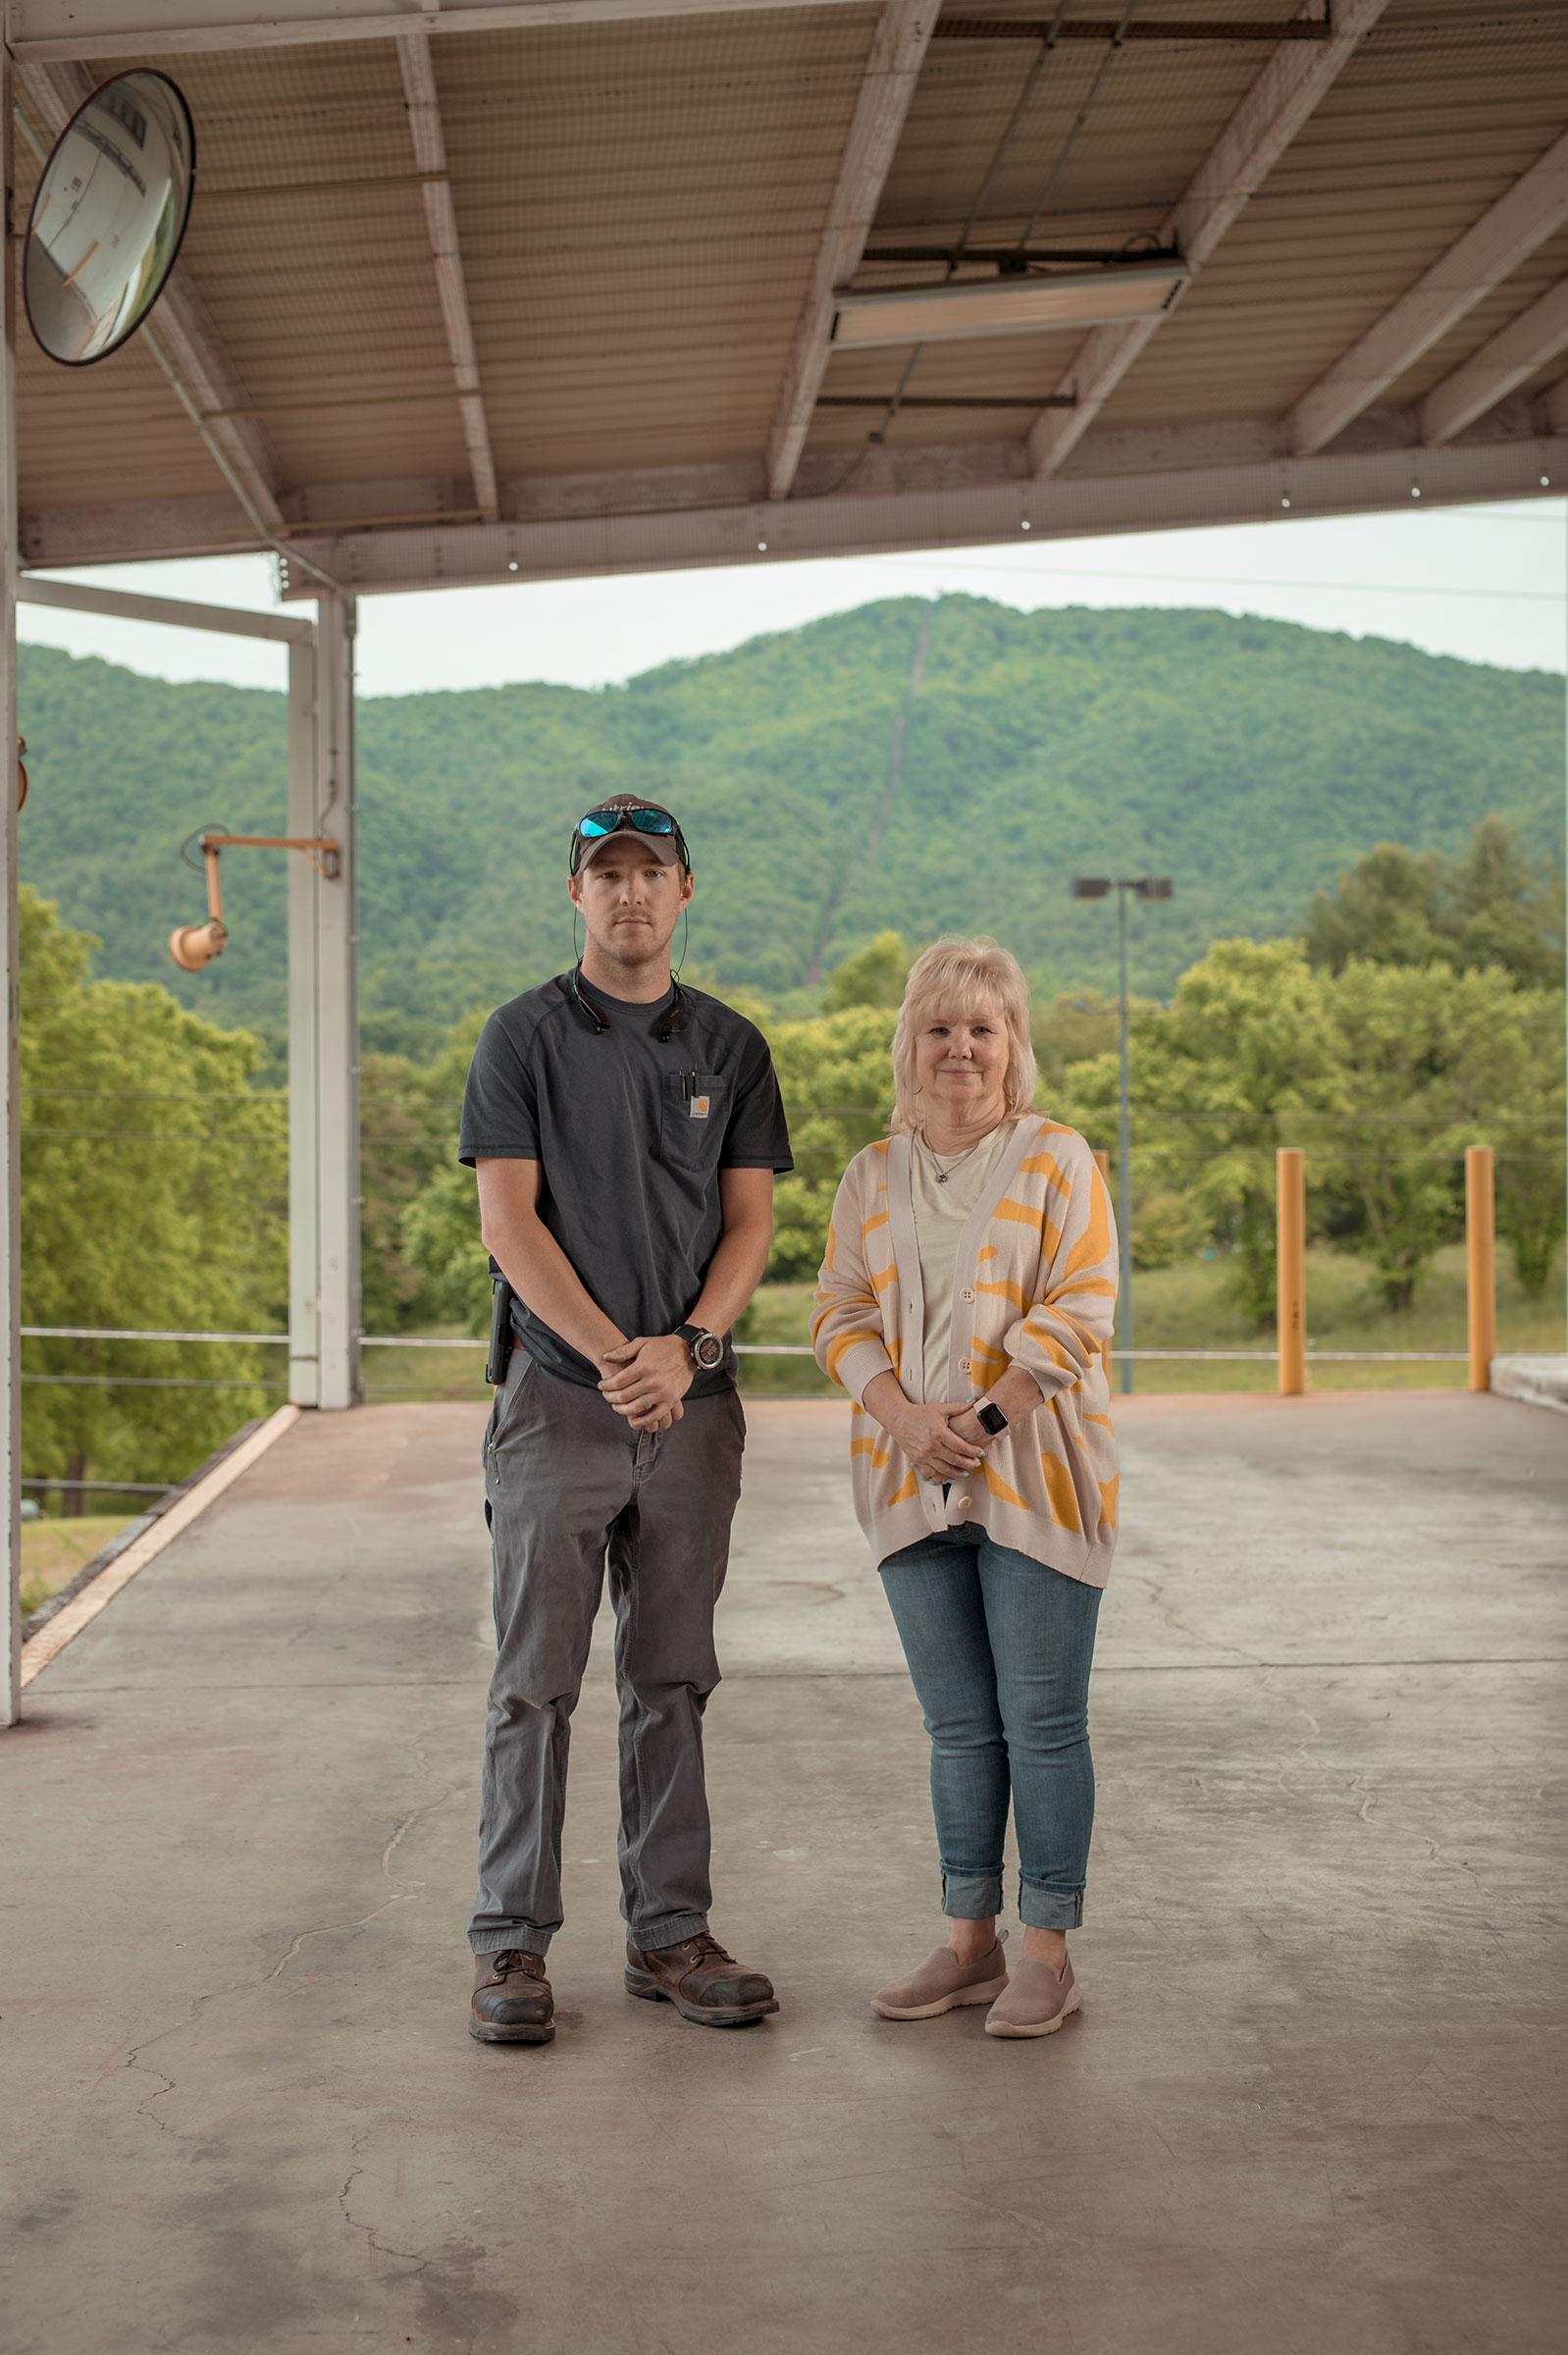 Renea Jones Rogers, co-owner of Jones and Church Farms tomato farm, and her son, Nick Rogers